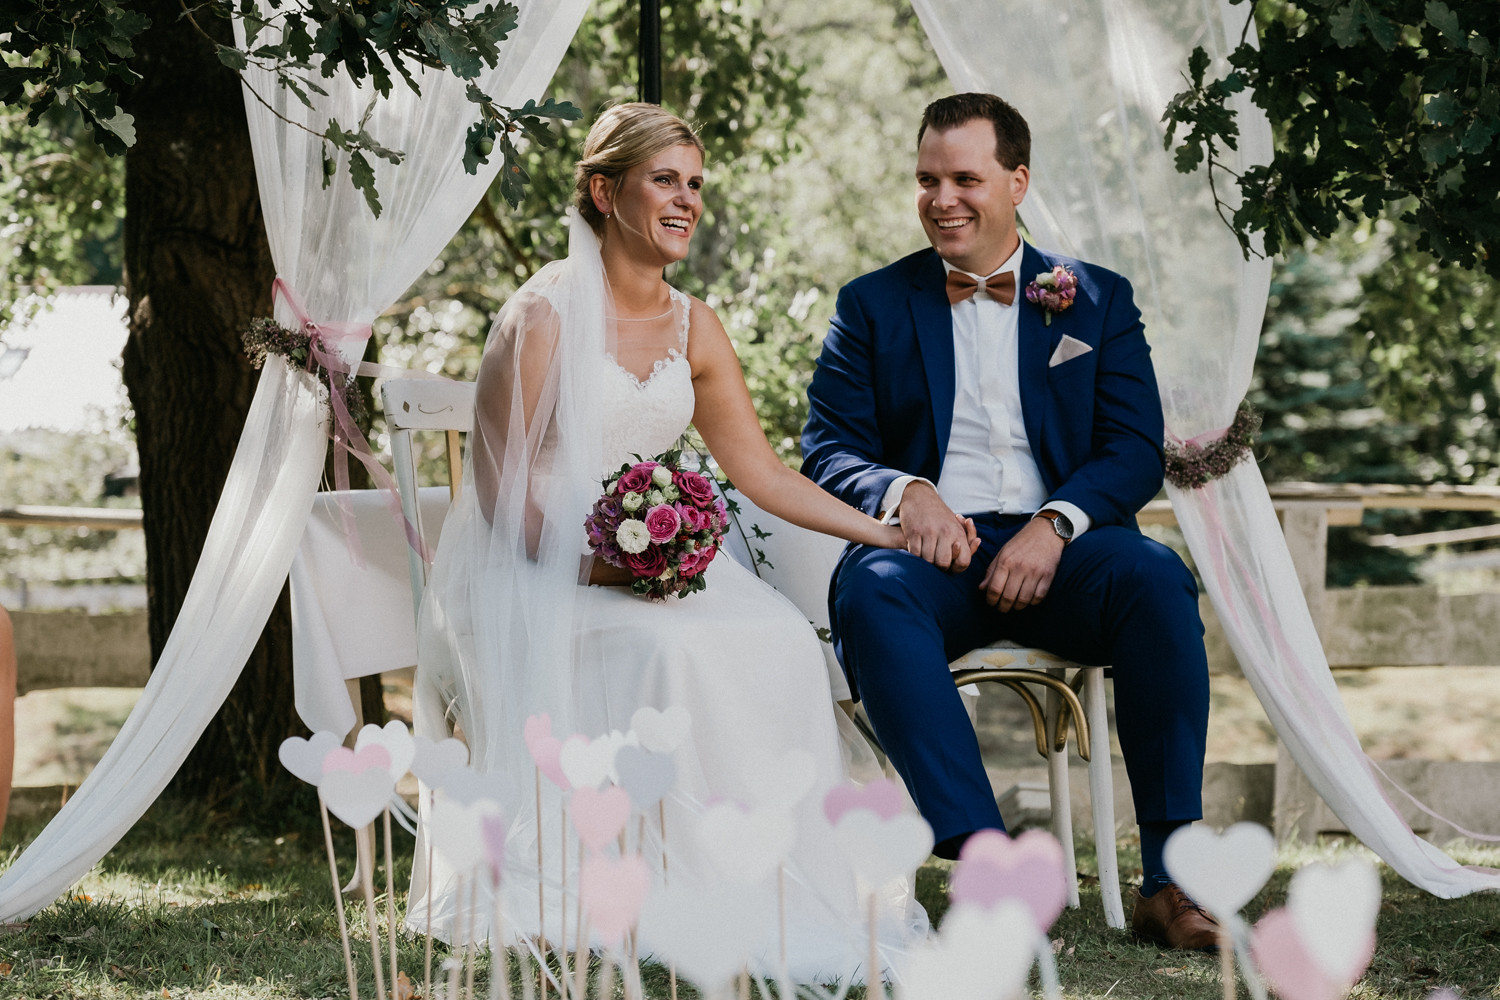 Garden wedding-SoulMade Fotodesign